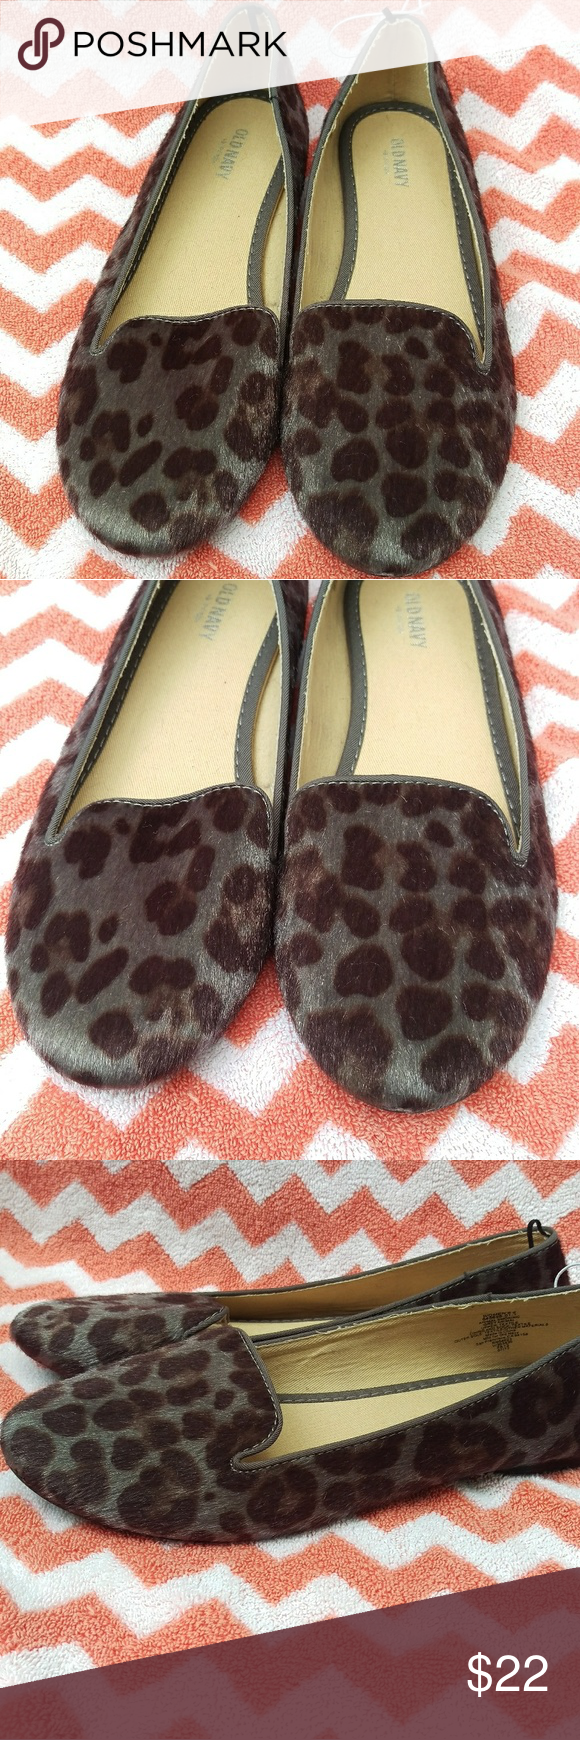 554f99d82d1 😸😸FUZZY Leopard Animal Print Smoking Flats Gray NWT